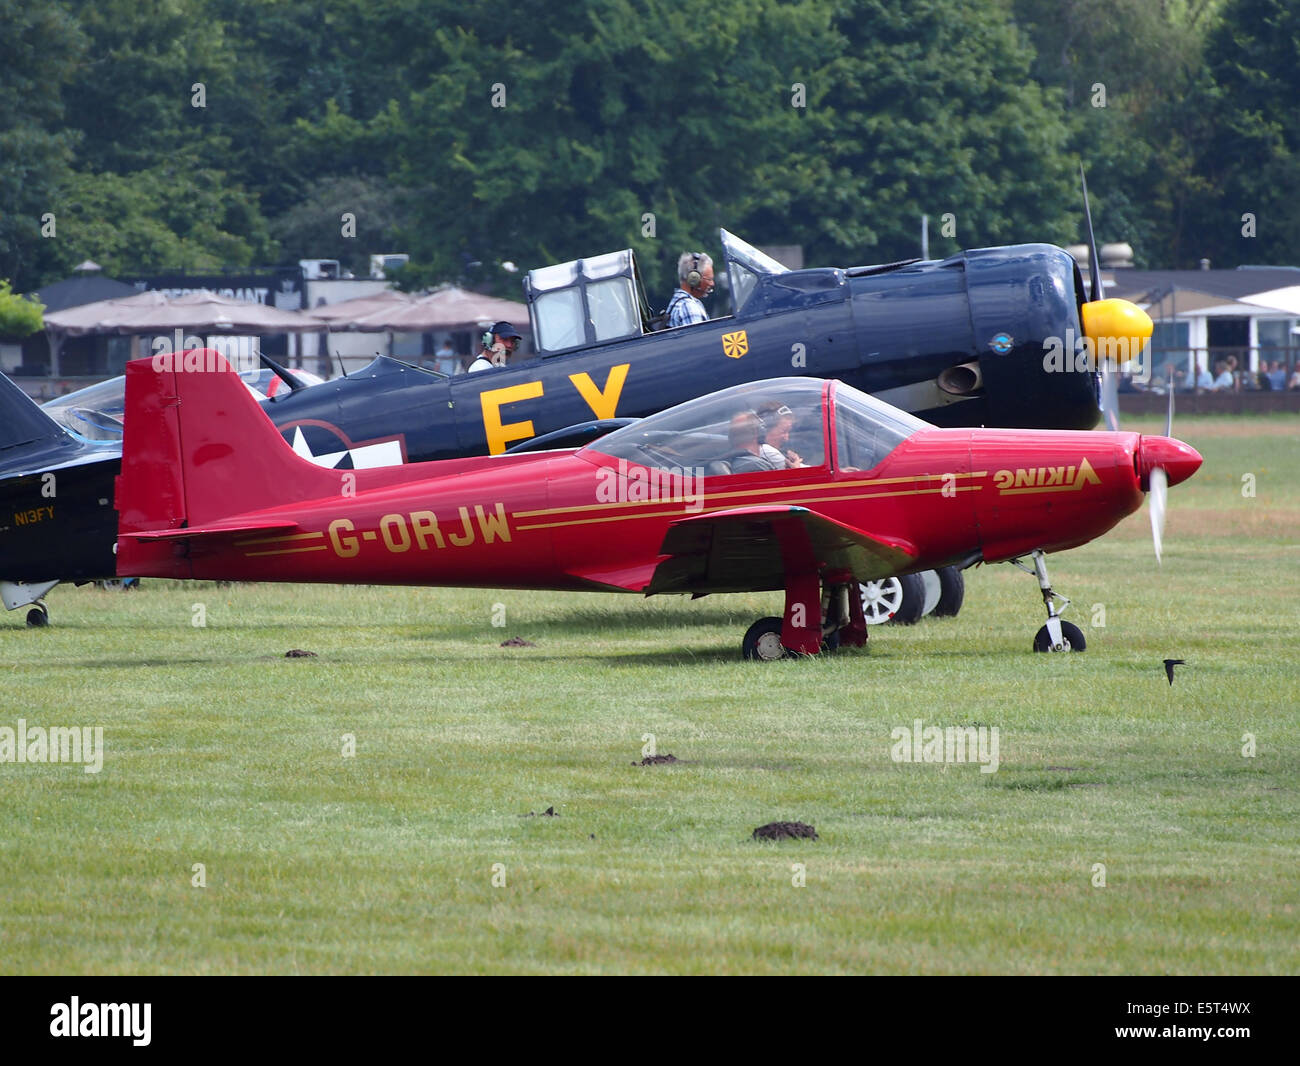 G-ORJW Laverda F8L Falco IV , takeoff from Hilversum Airport (ICAO EHHV), photo1 Stock Photo